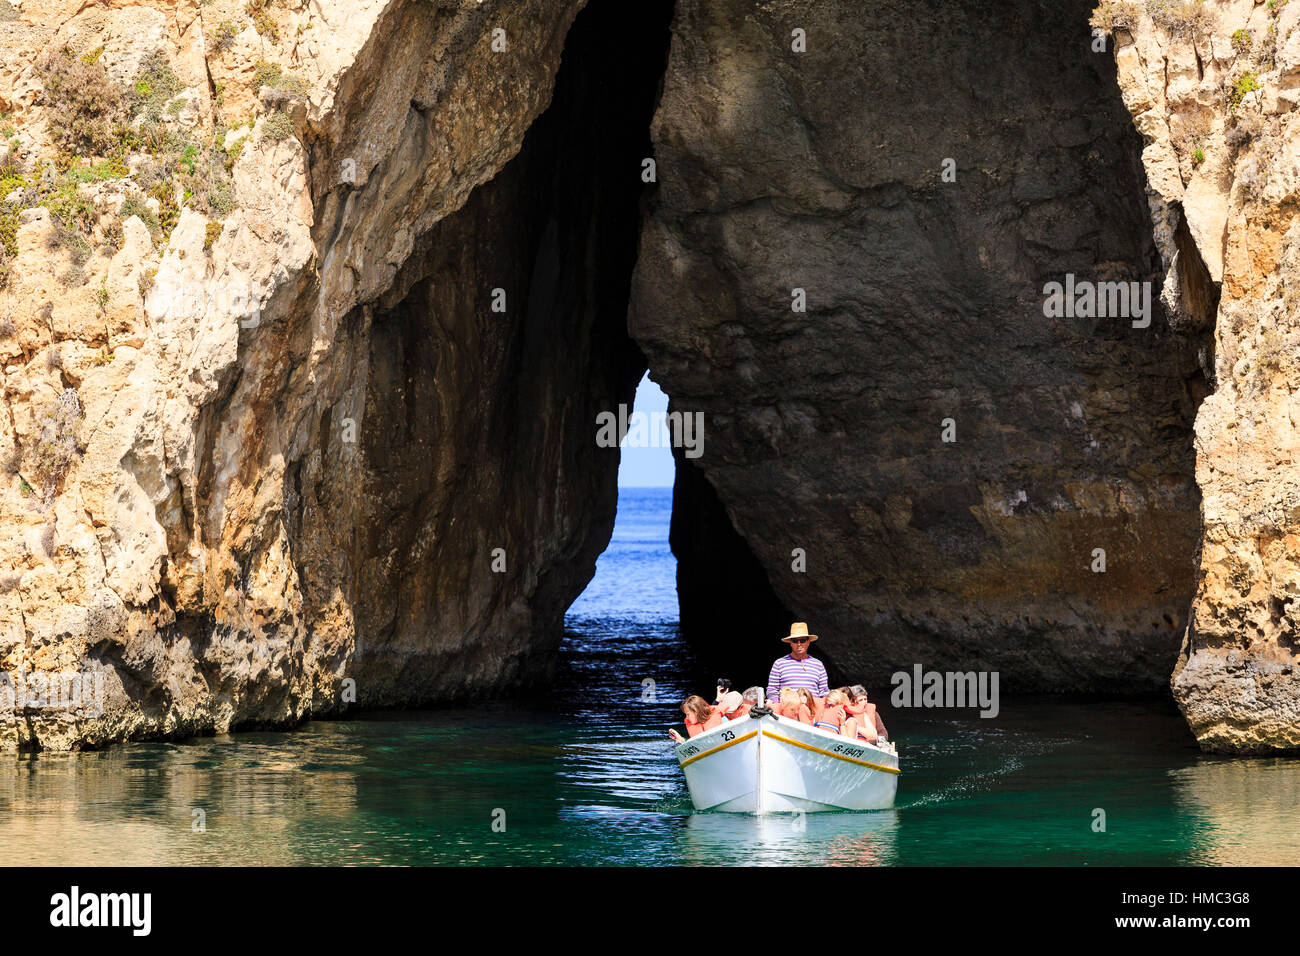 excursion boats travelling from the inland lagoon through the arch to the azure window, gozo, malta - Stock Image